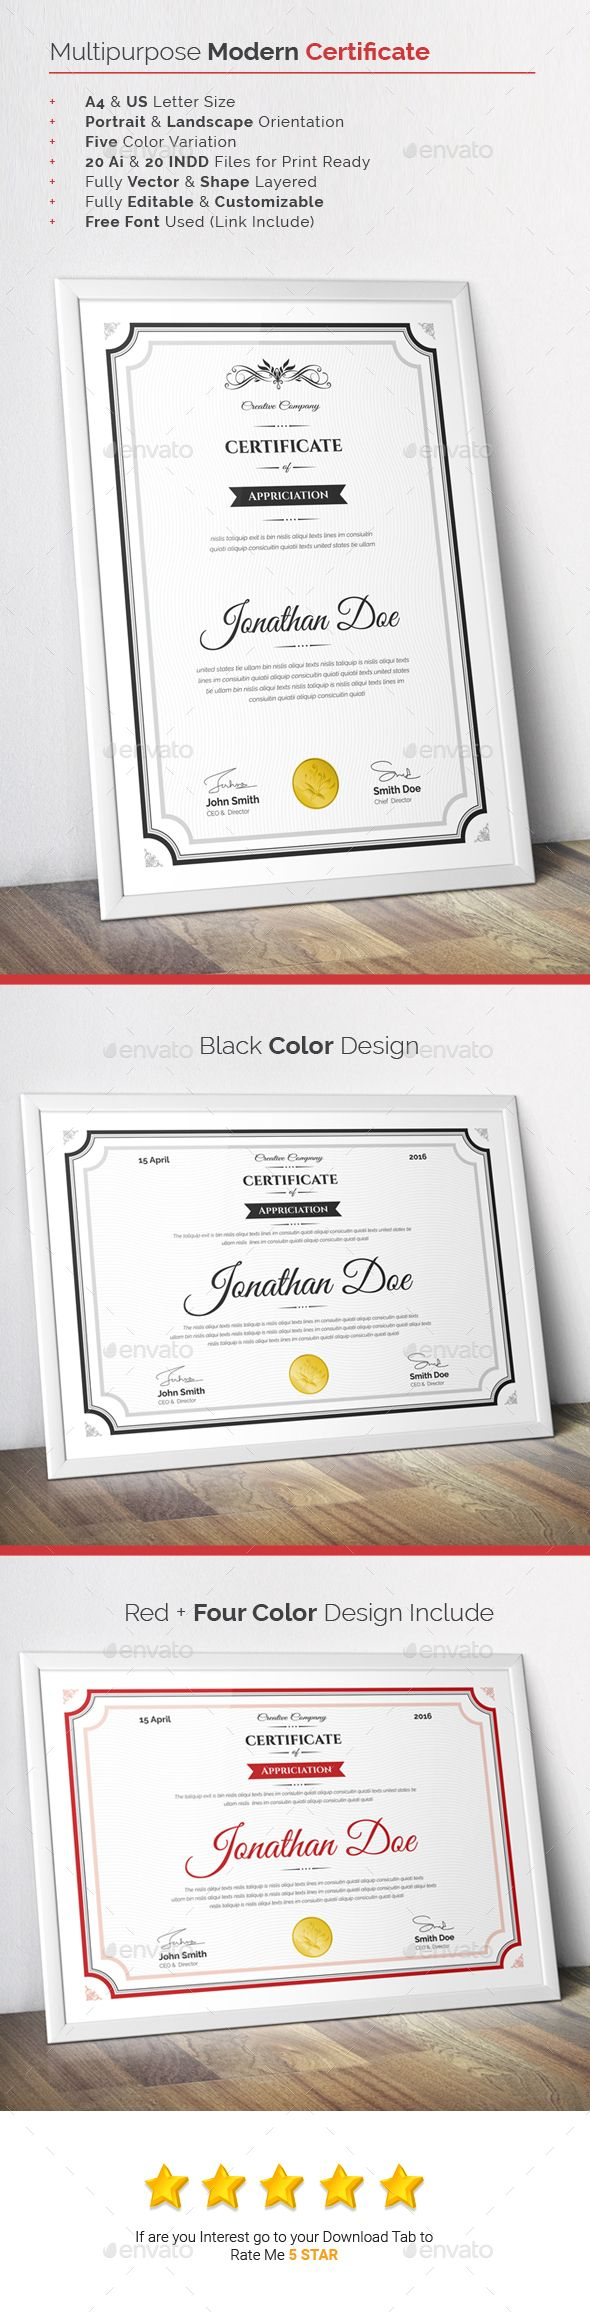 Best 25 Certificate templates ideas on Pinterest Free